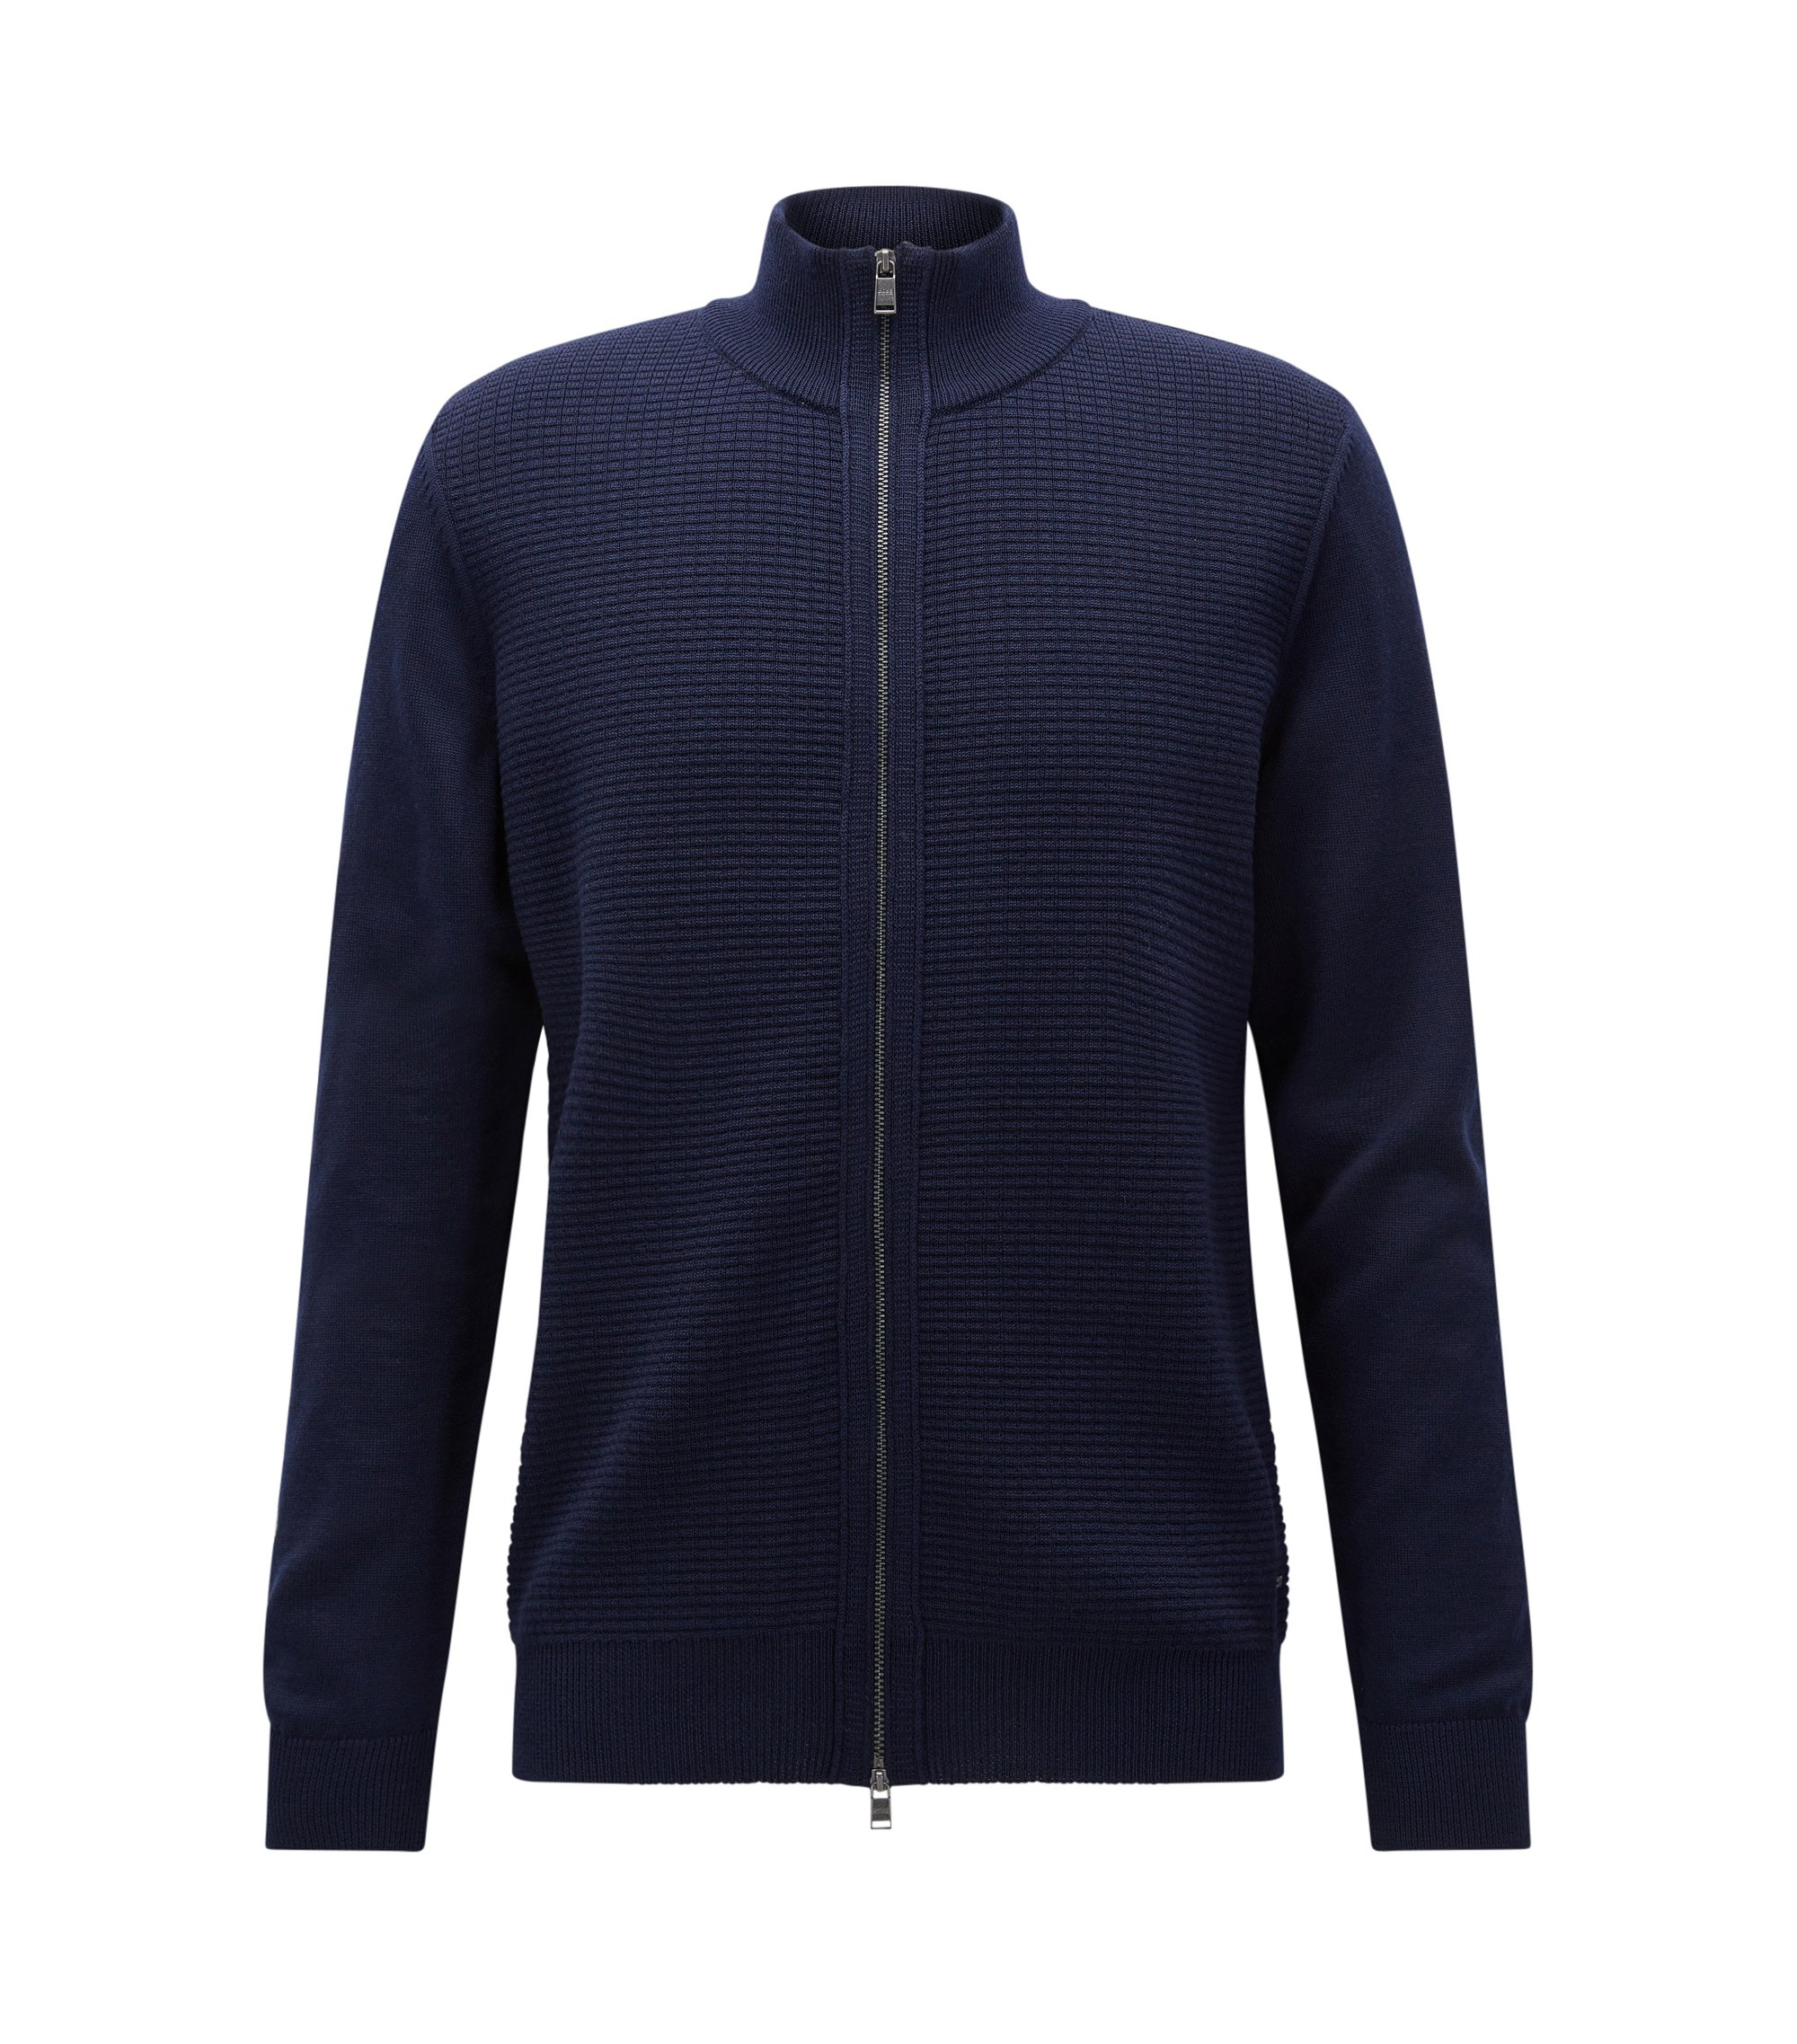 Waffle Knit Virgin Wool Zip Jacket | Naddeo, Dark Blue